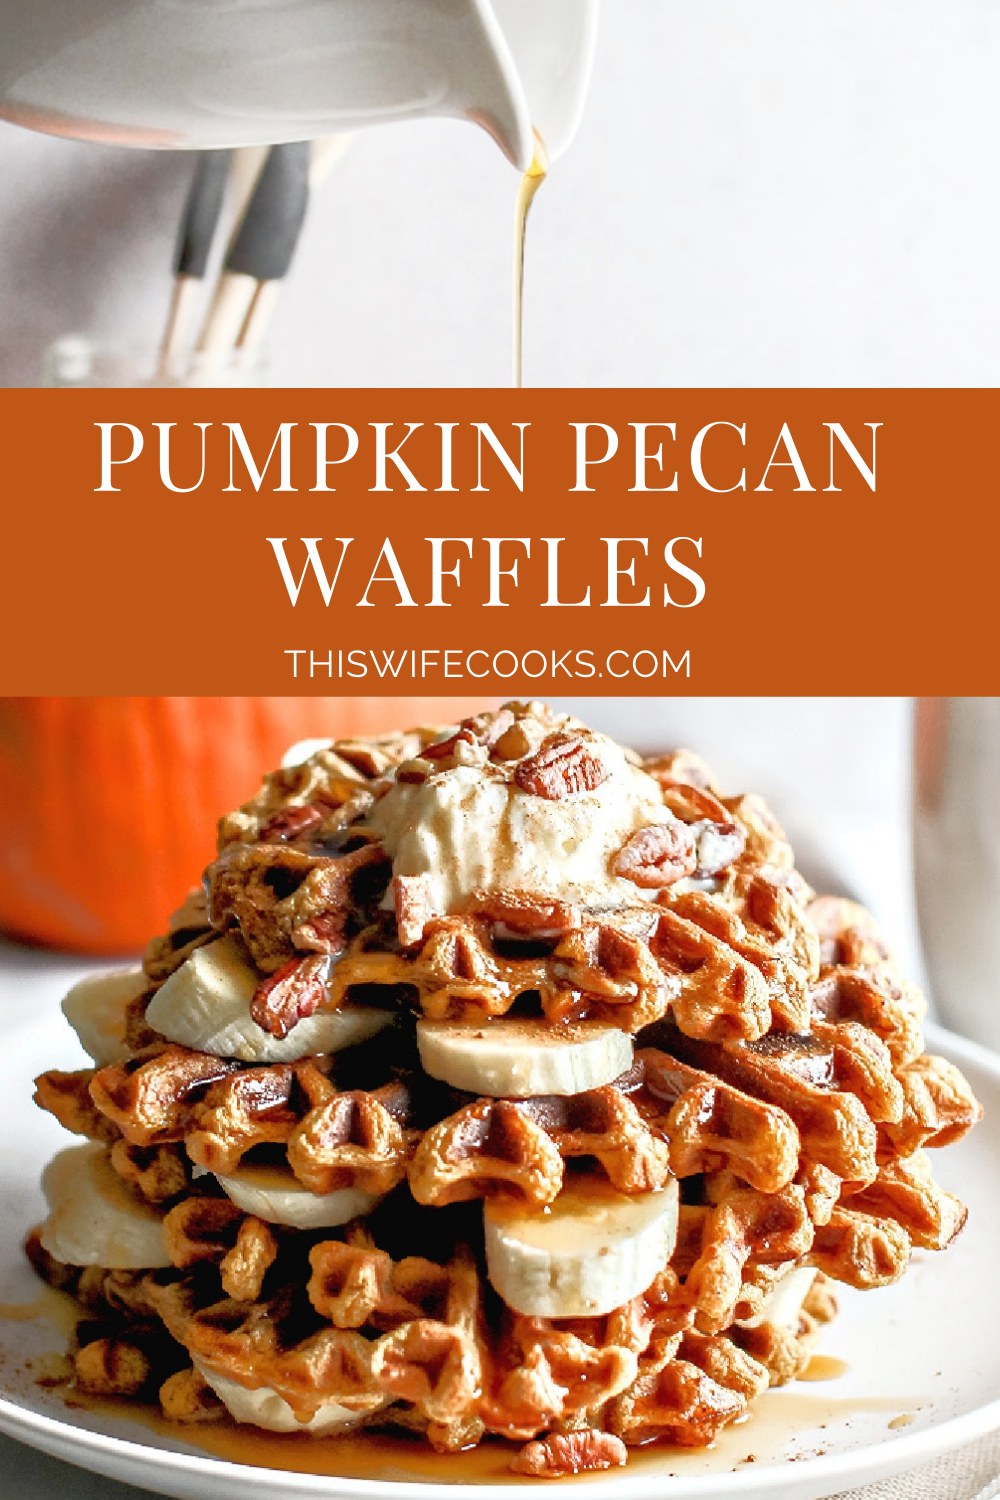 Perfect for chilly fall mornings! These savory waffles are lightly crisp on the outside, soft on the inside, and packed with the best spice flavors of the season.  via @thiswifecooks